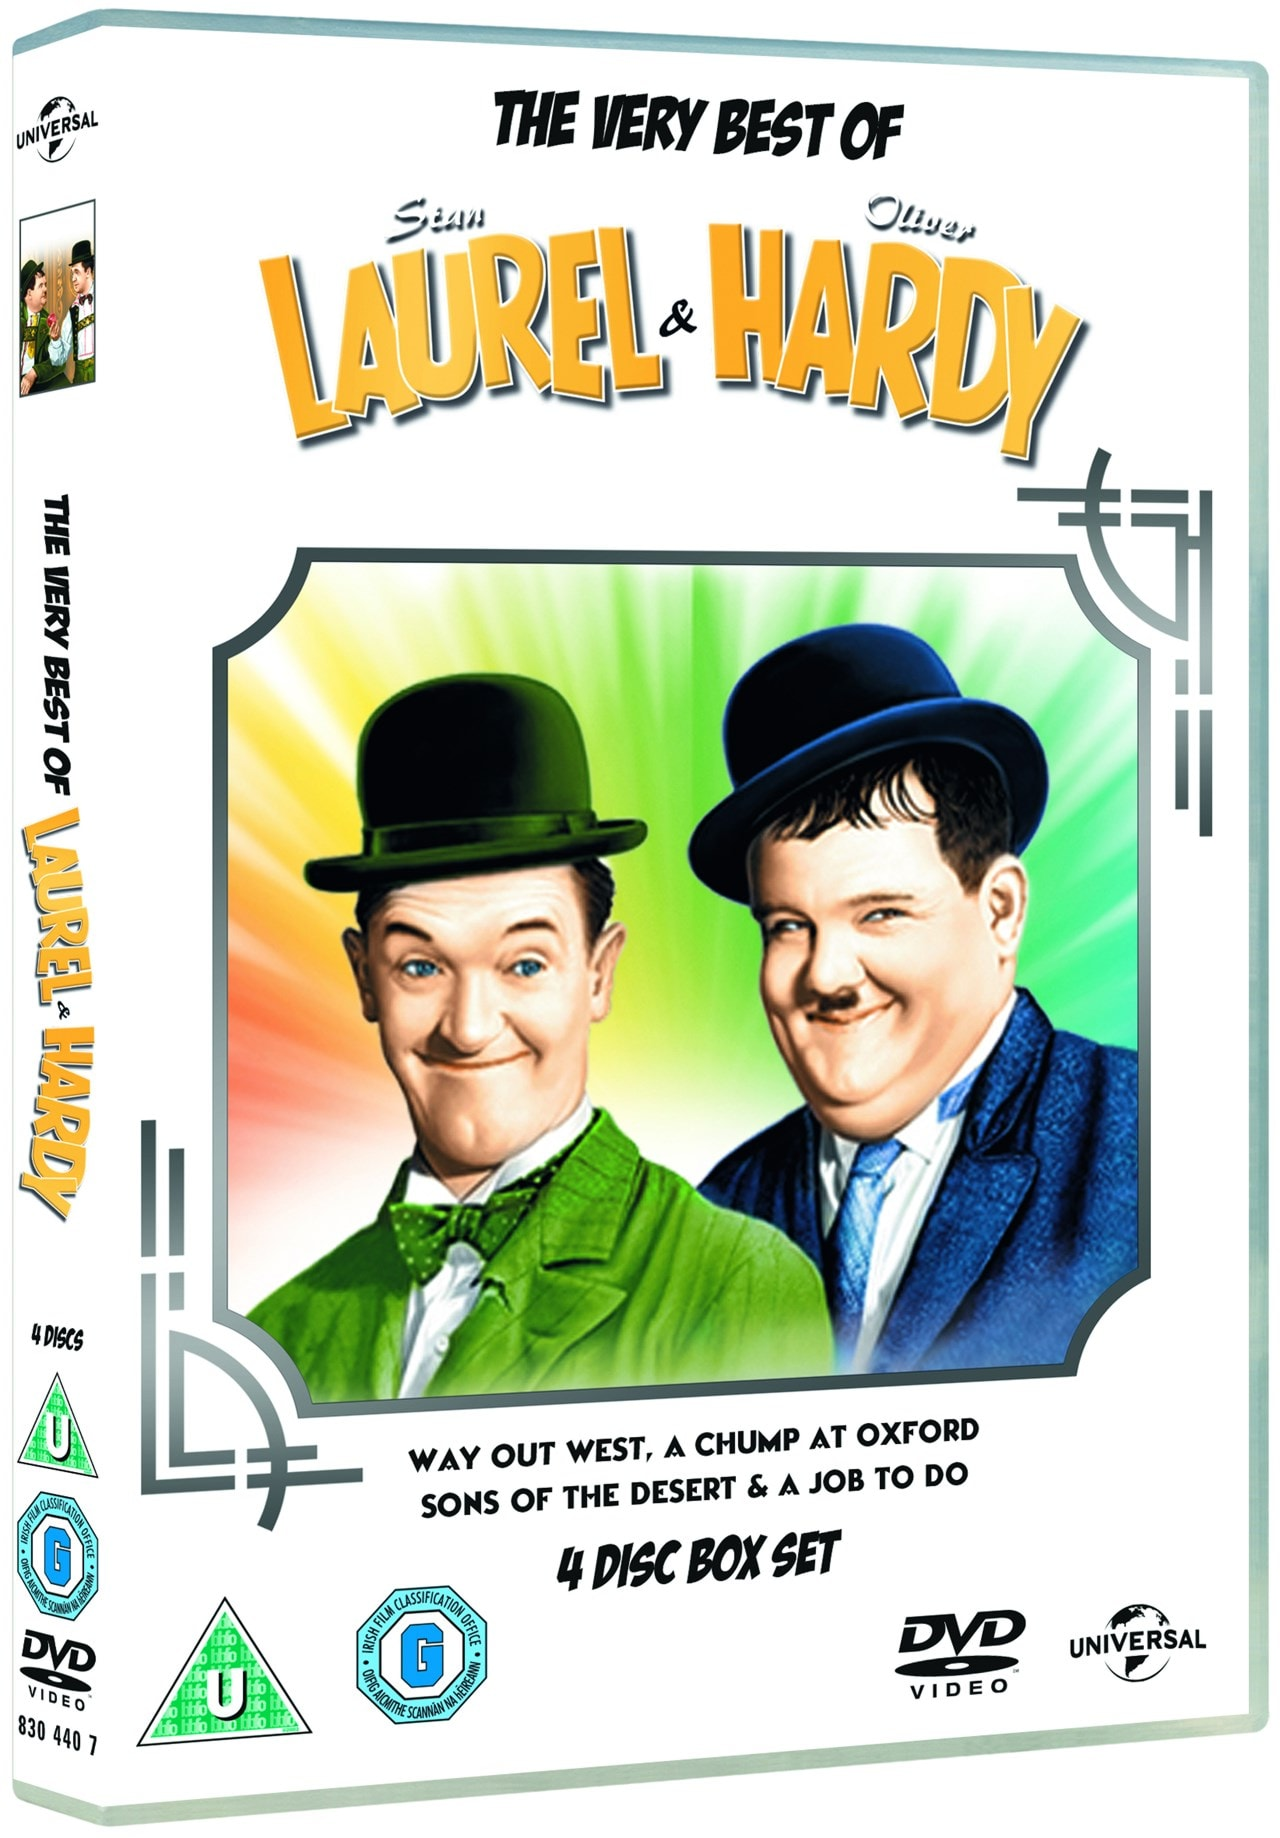 The Very Best of Laurel and Hardy - 2